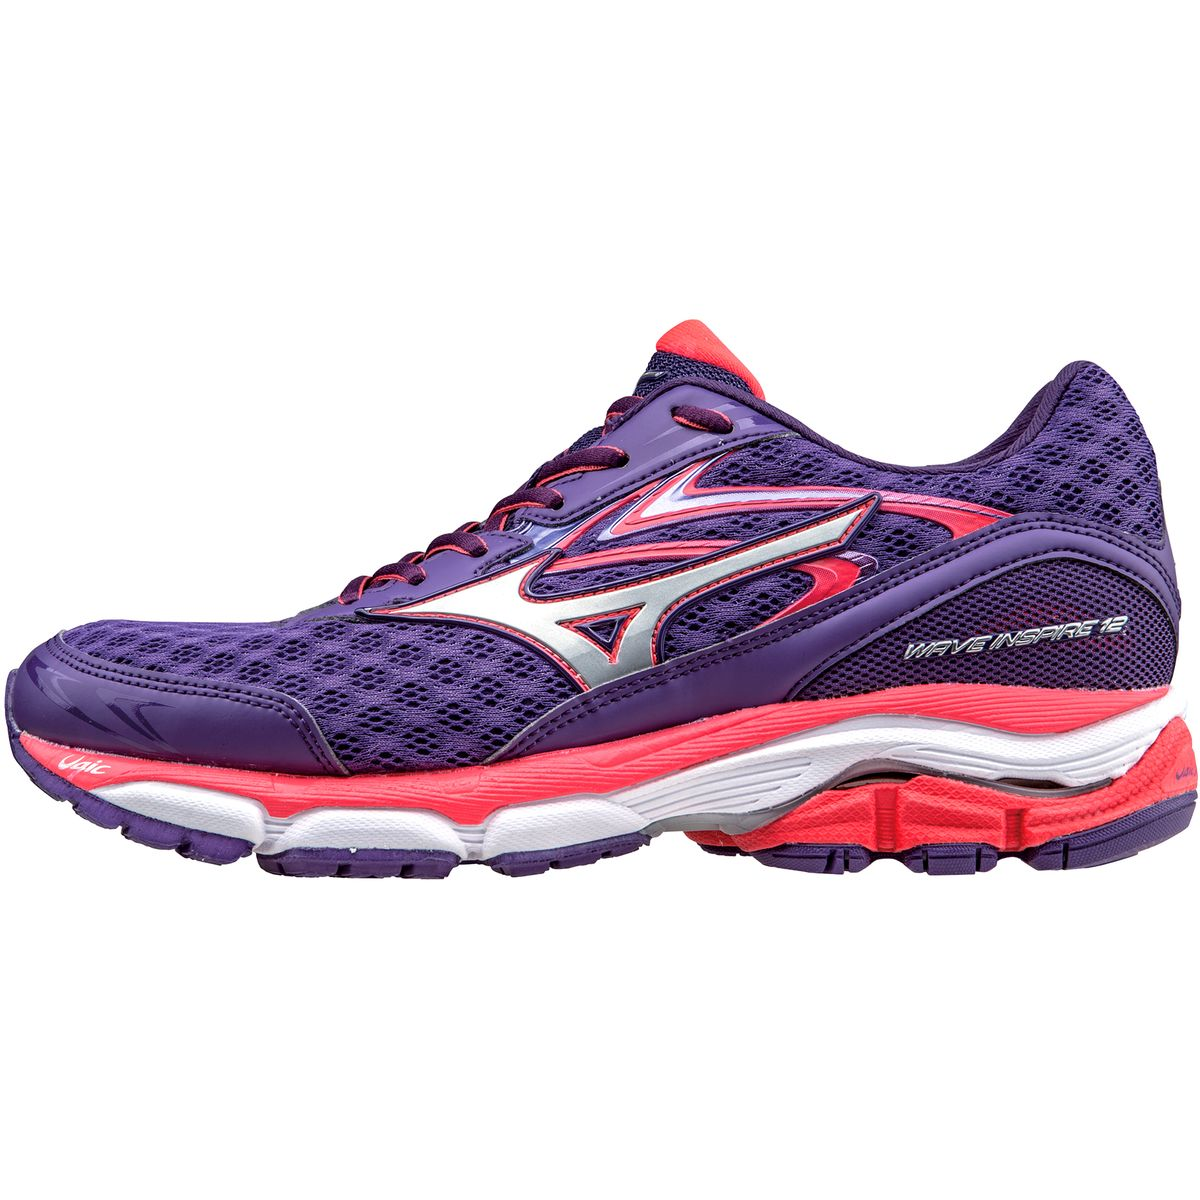 Simple On The Best NewStyles From All The Mizuno Mens Shoes Best BrandsMizuno Wave Shadow Womens Shoes Fuchsia Purple Silver NewMizuno Womens Running Shoes Womens Athletic Shoes, Mizuno Wave RiderNow Mizuno Wave